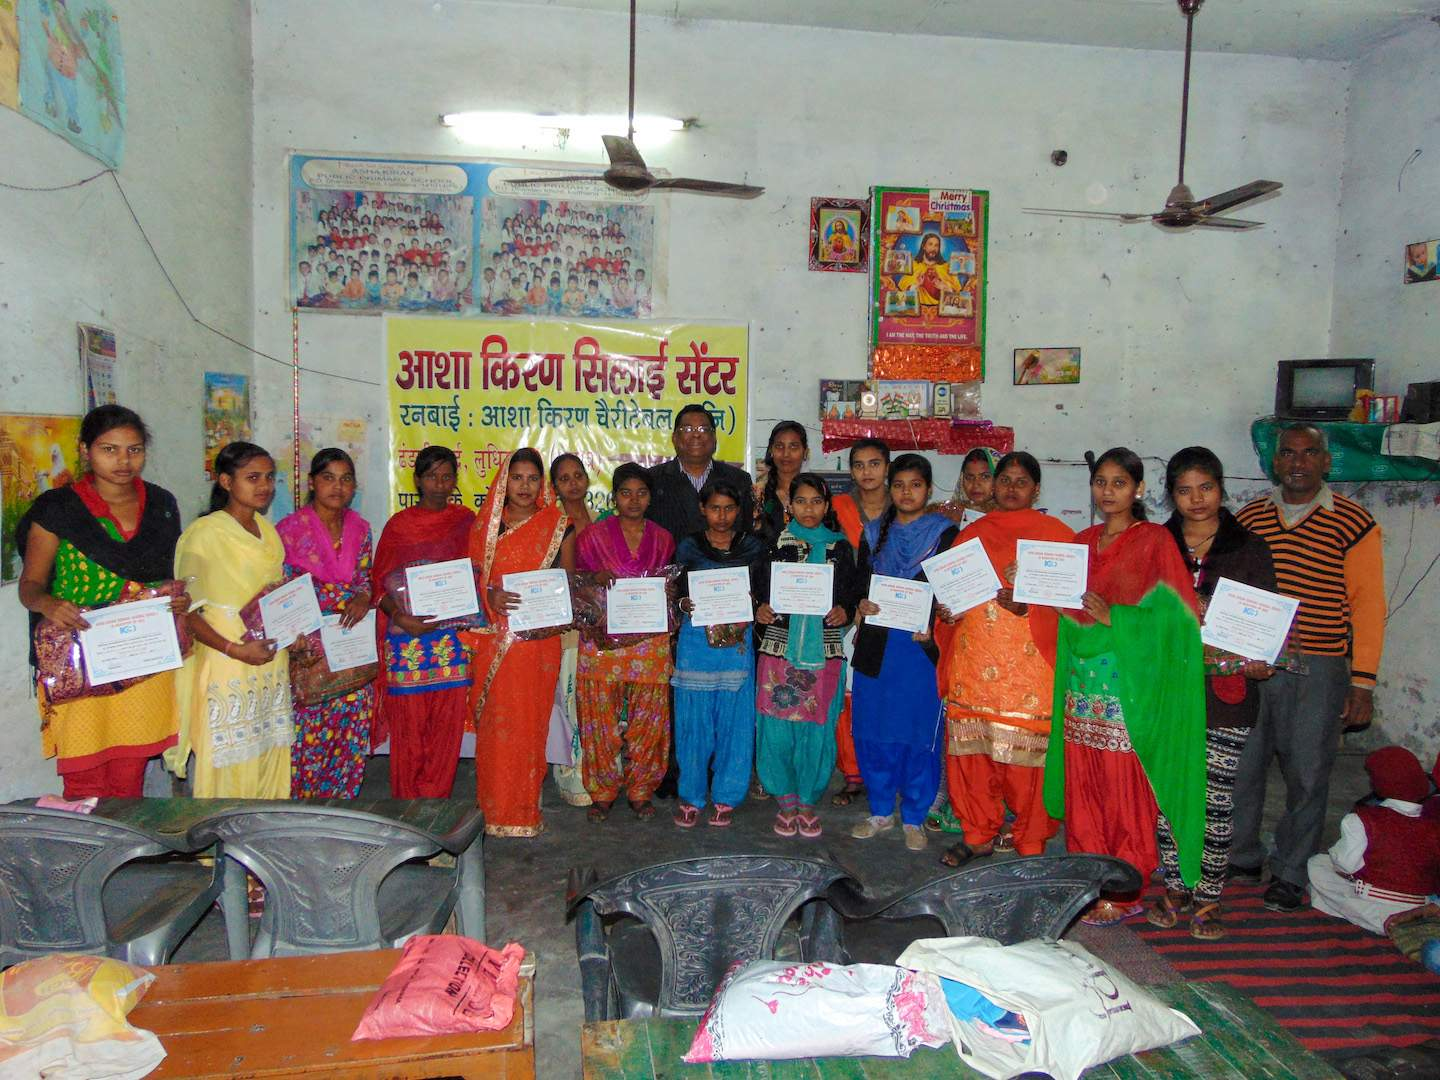 A group of women display their certificates after completing their sewing course and learning to manage money.